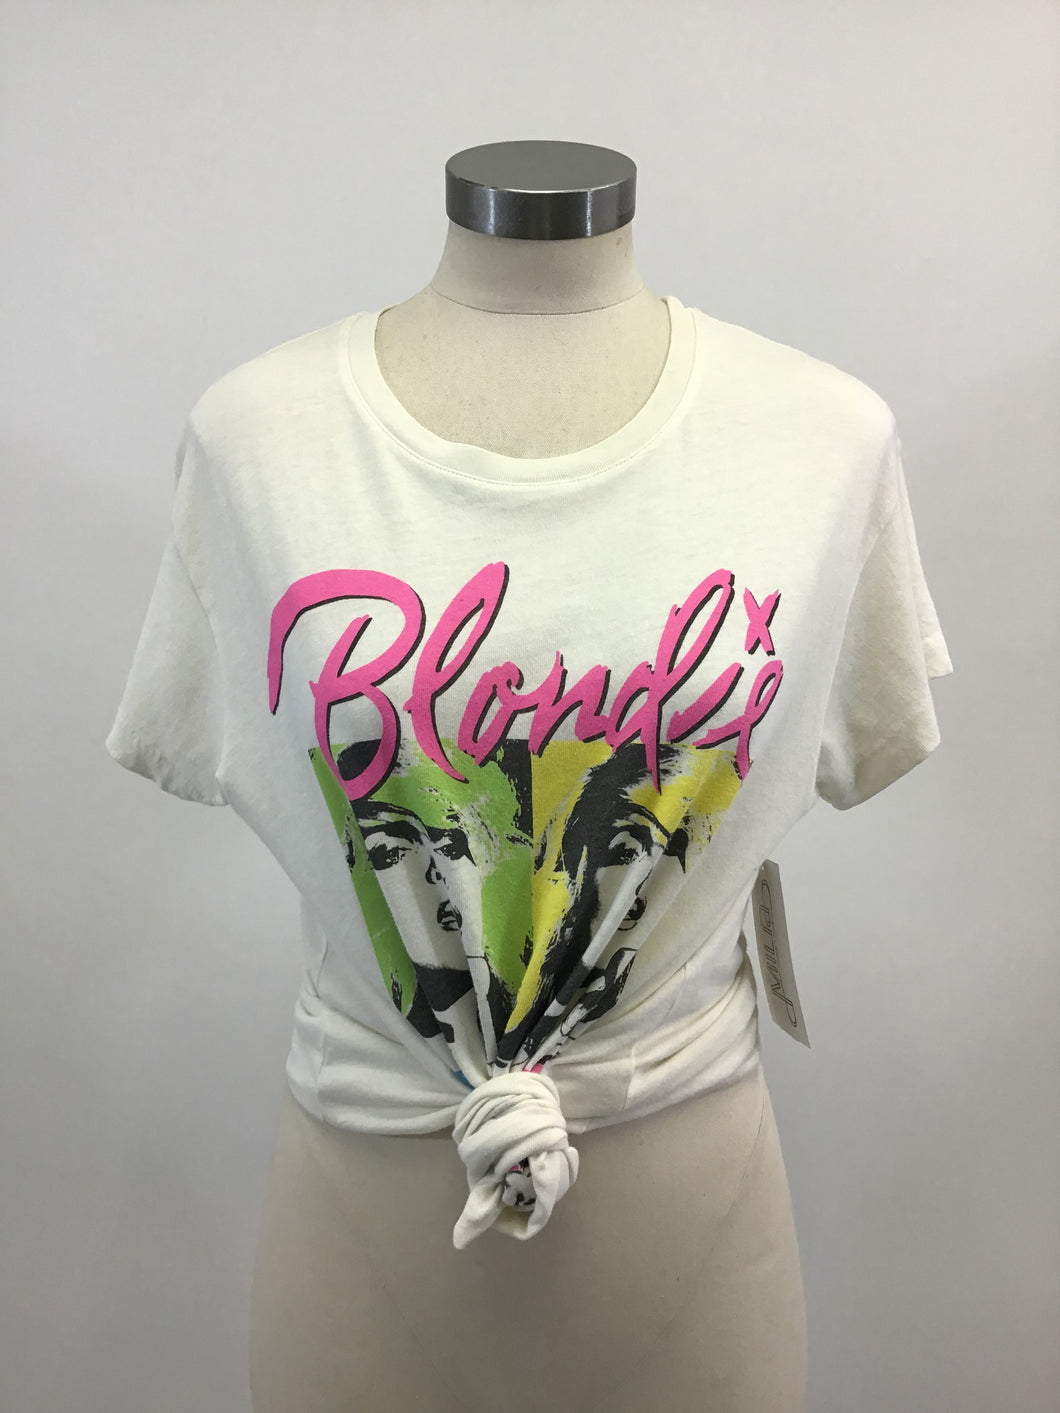 Daydreamer Blondie Pop Poster Tee